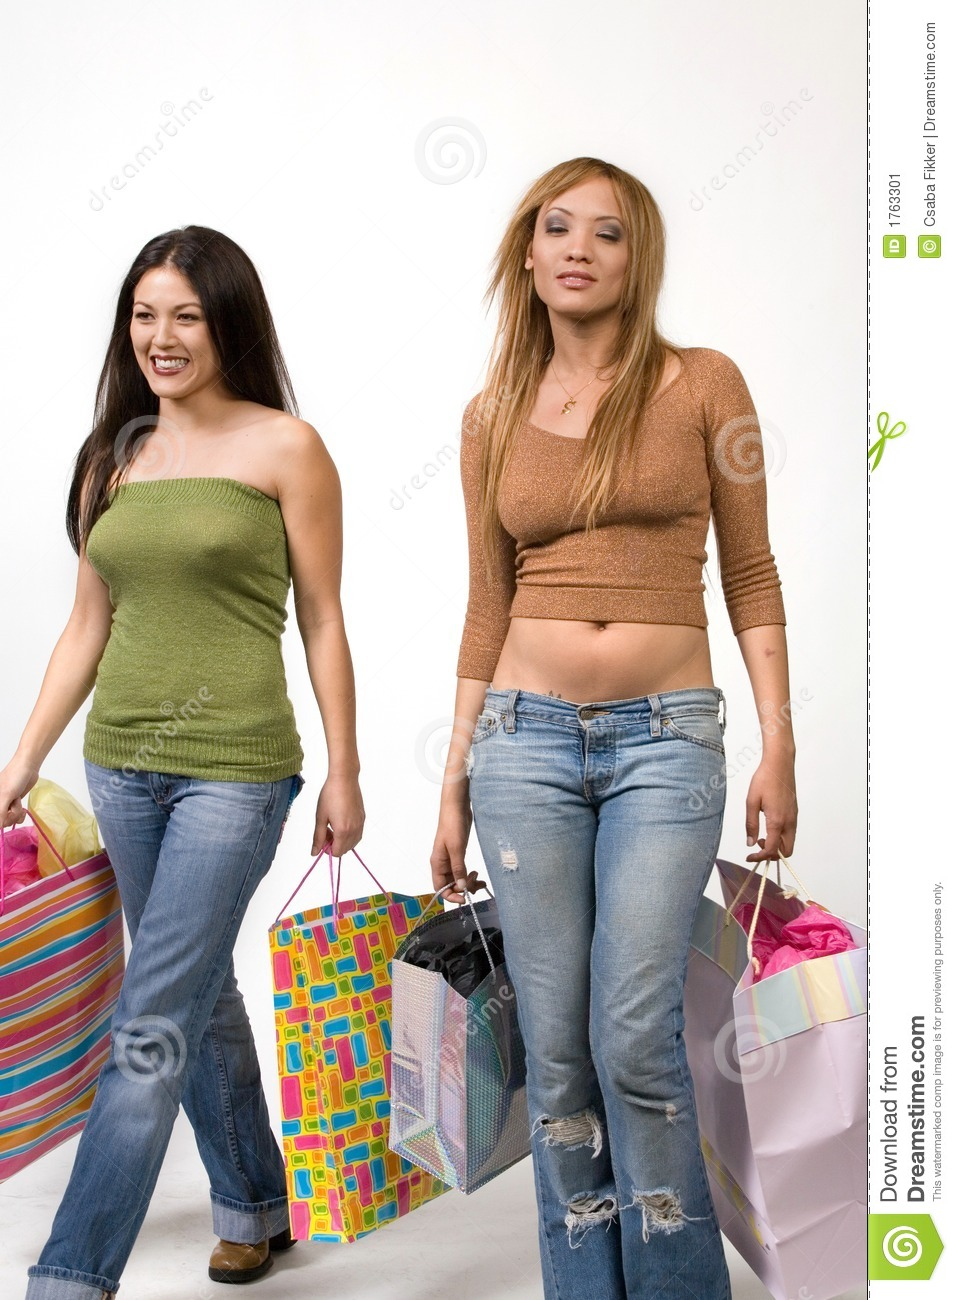 young  hip female shoppers stock image image 1763301 money bags clip art black and white money bags clip art free images